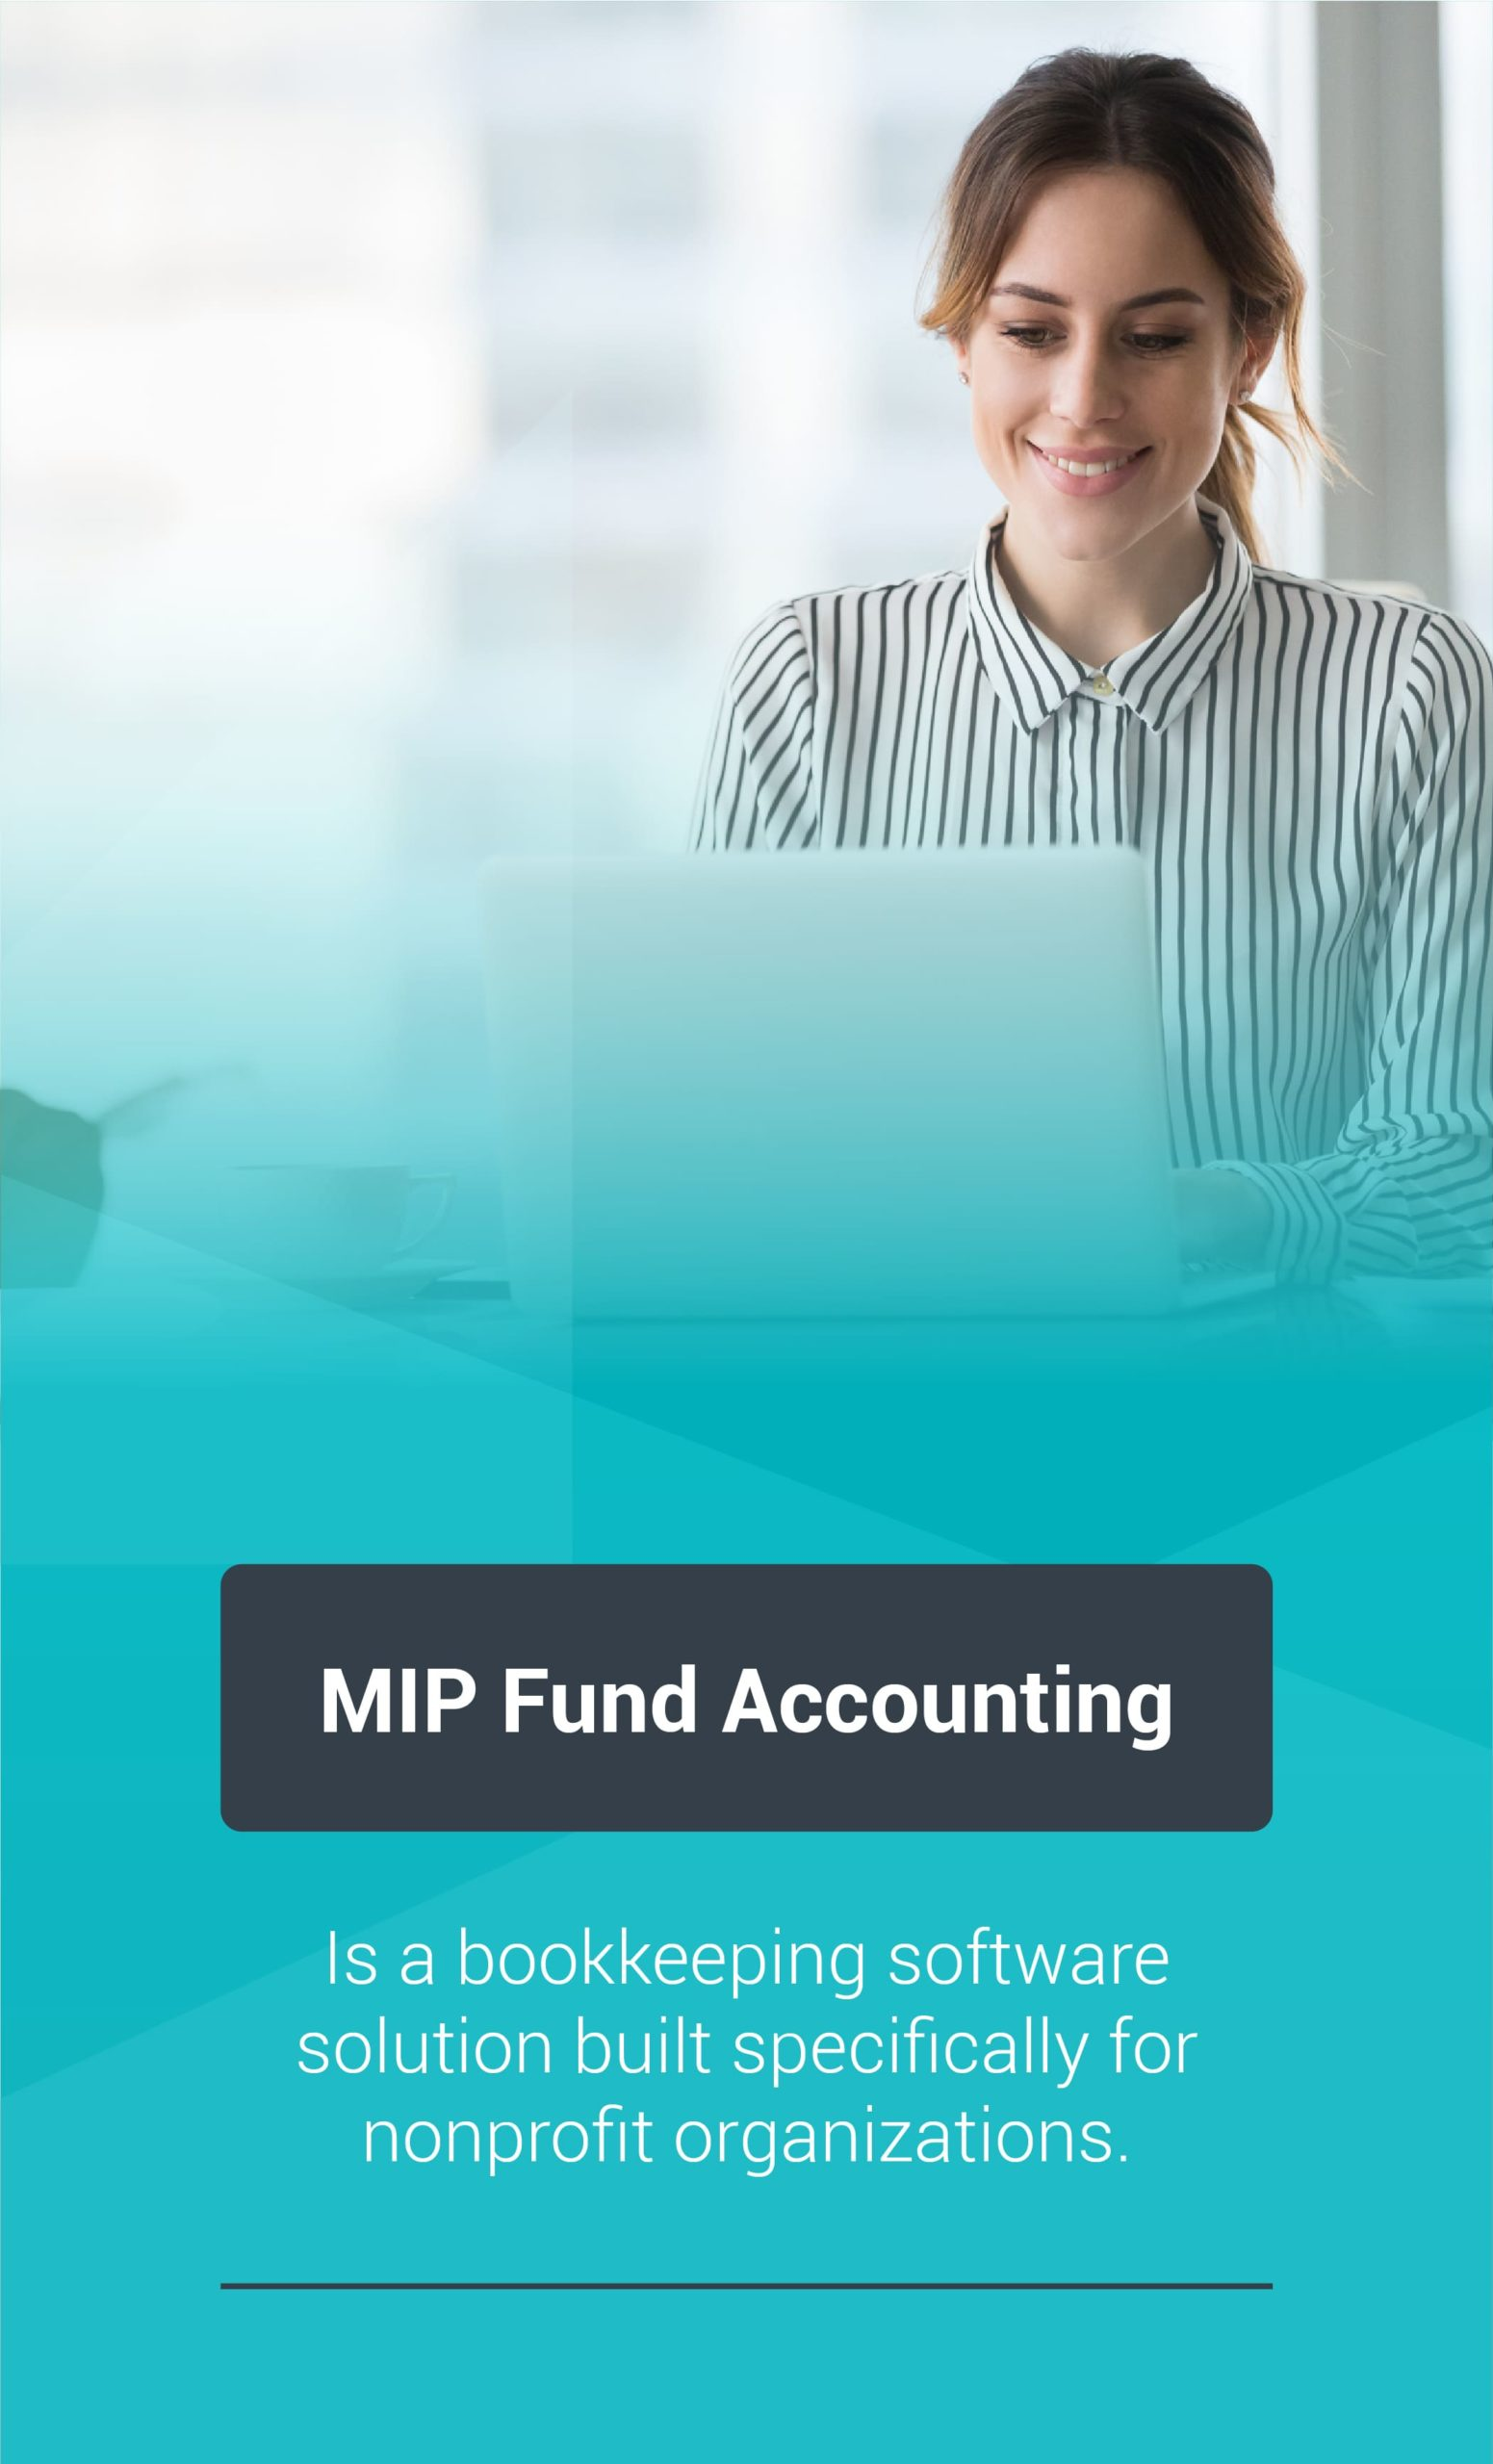 bookkeeping software built specifically for nonprofits